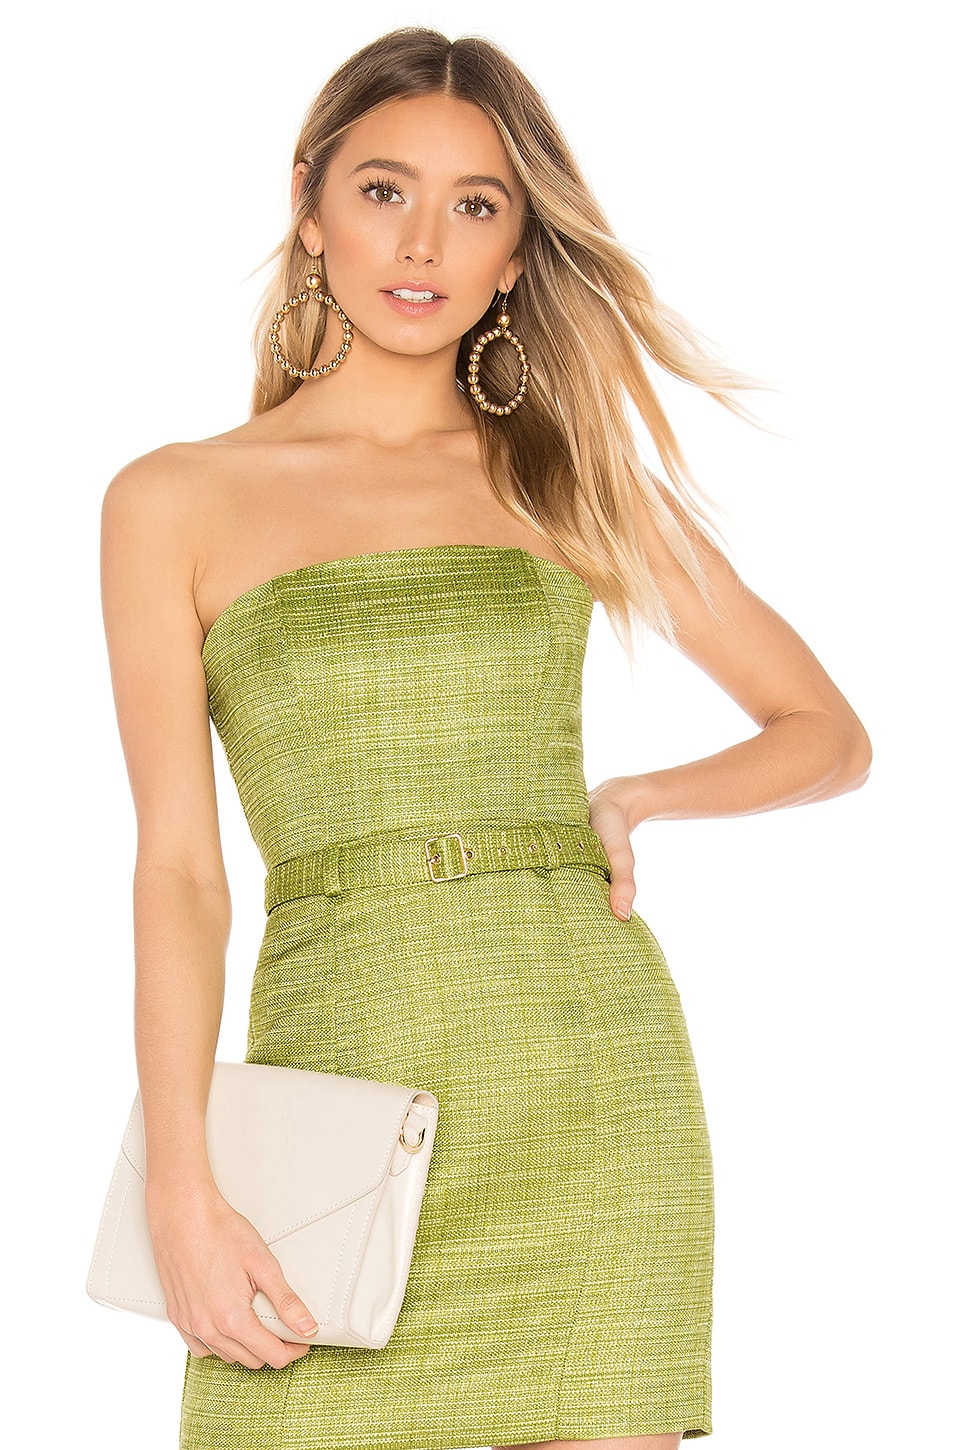 MAJORELLE Marrakesh Top in Pear Green